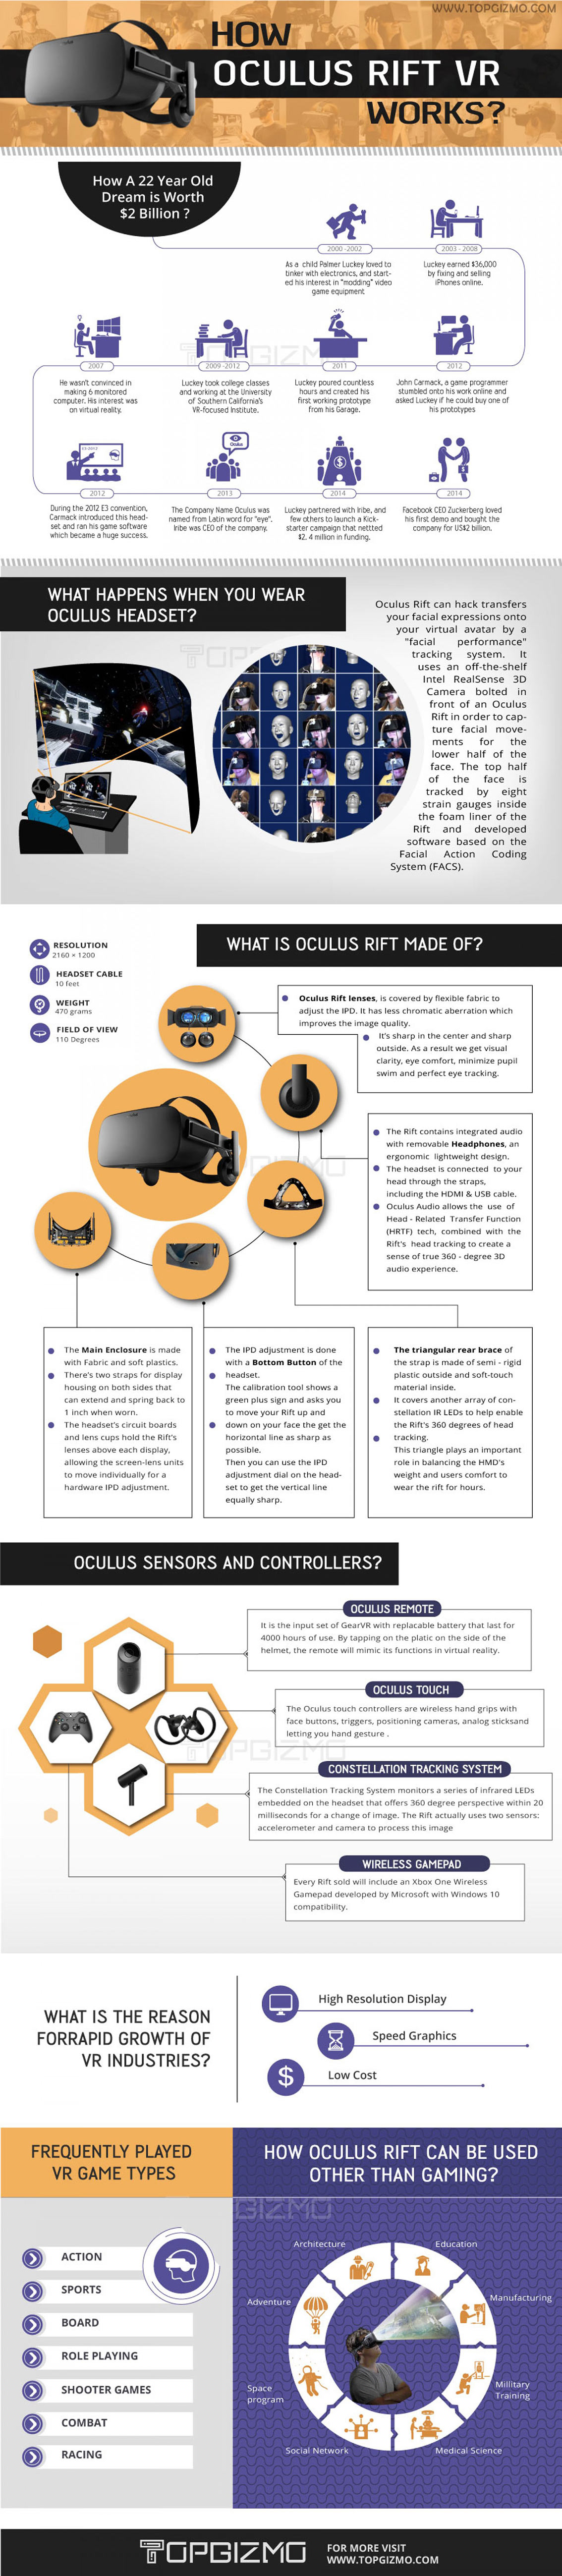 Oculus Rift How the Device Works Infographic